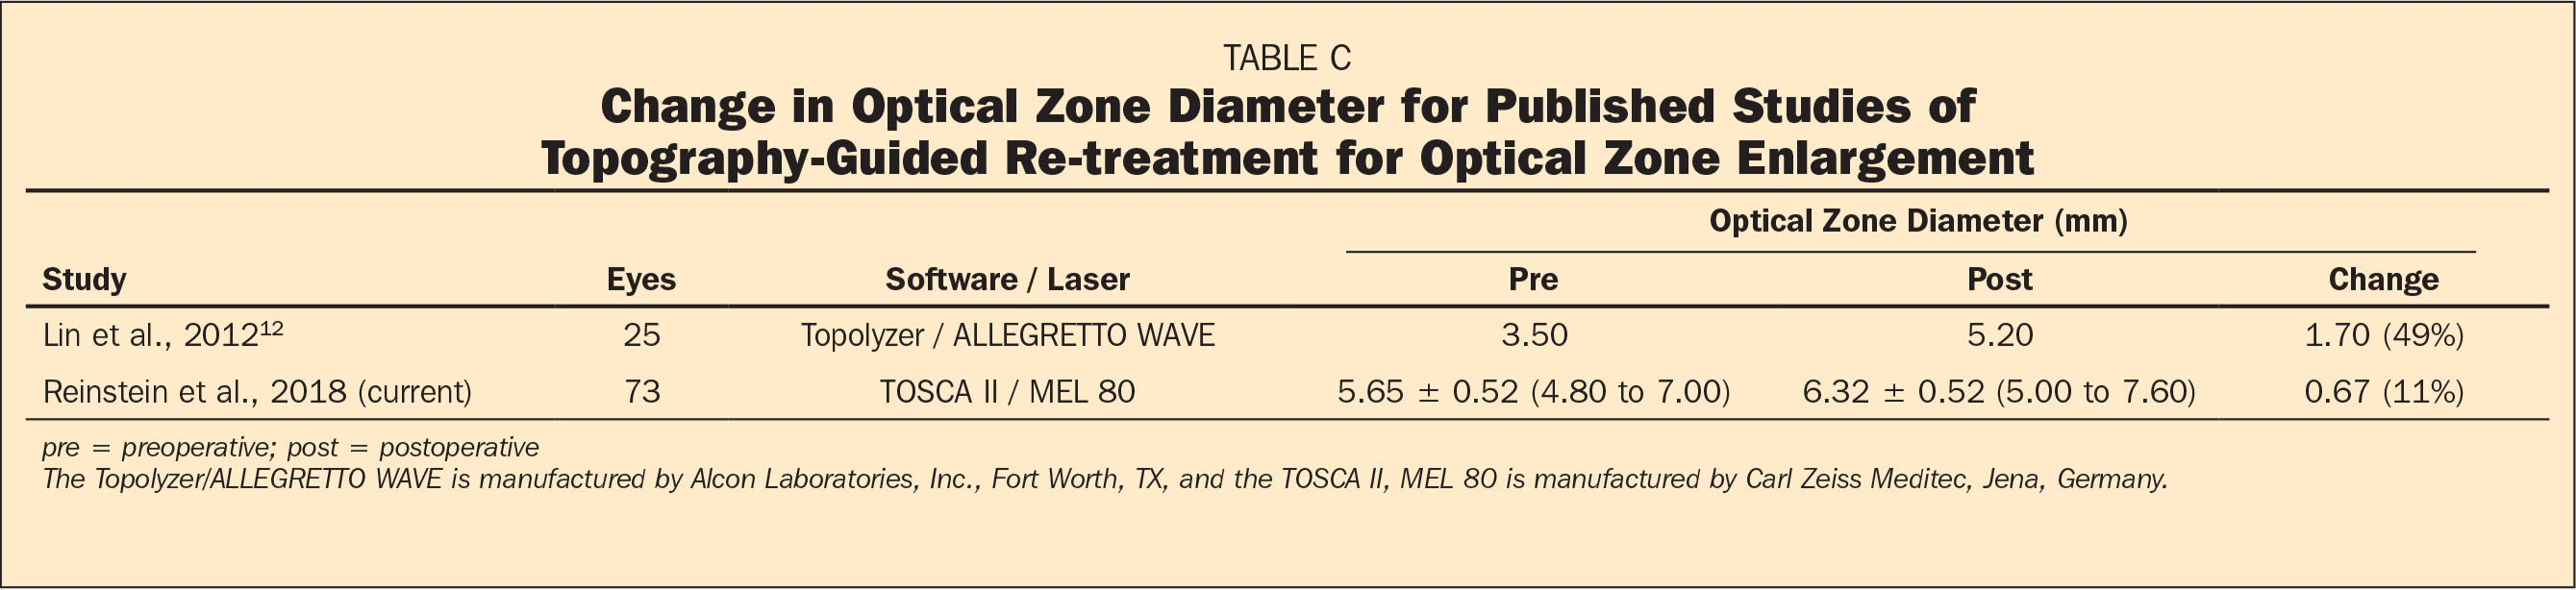 Change in Optical Zone Diameter for Published Studies of Topography-Guided Re-treatment for Optical Zone Enlargement